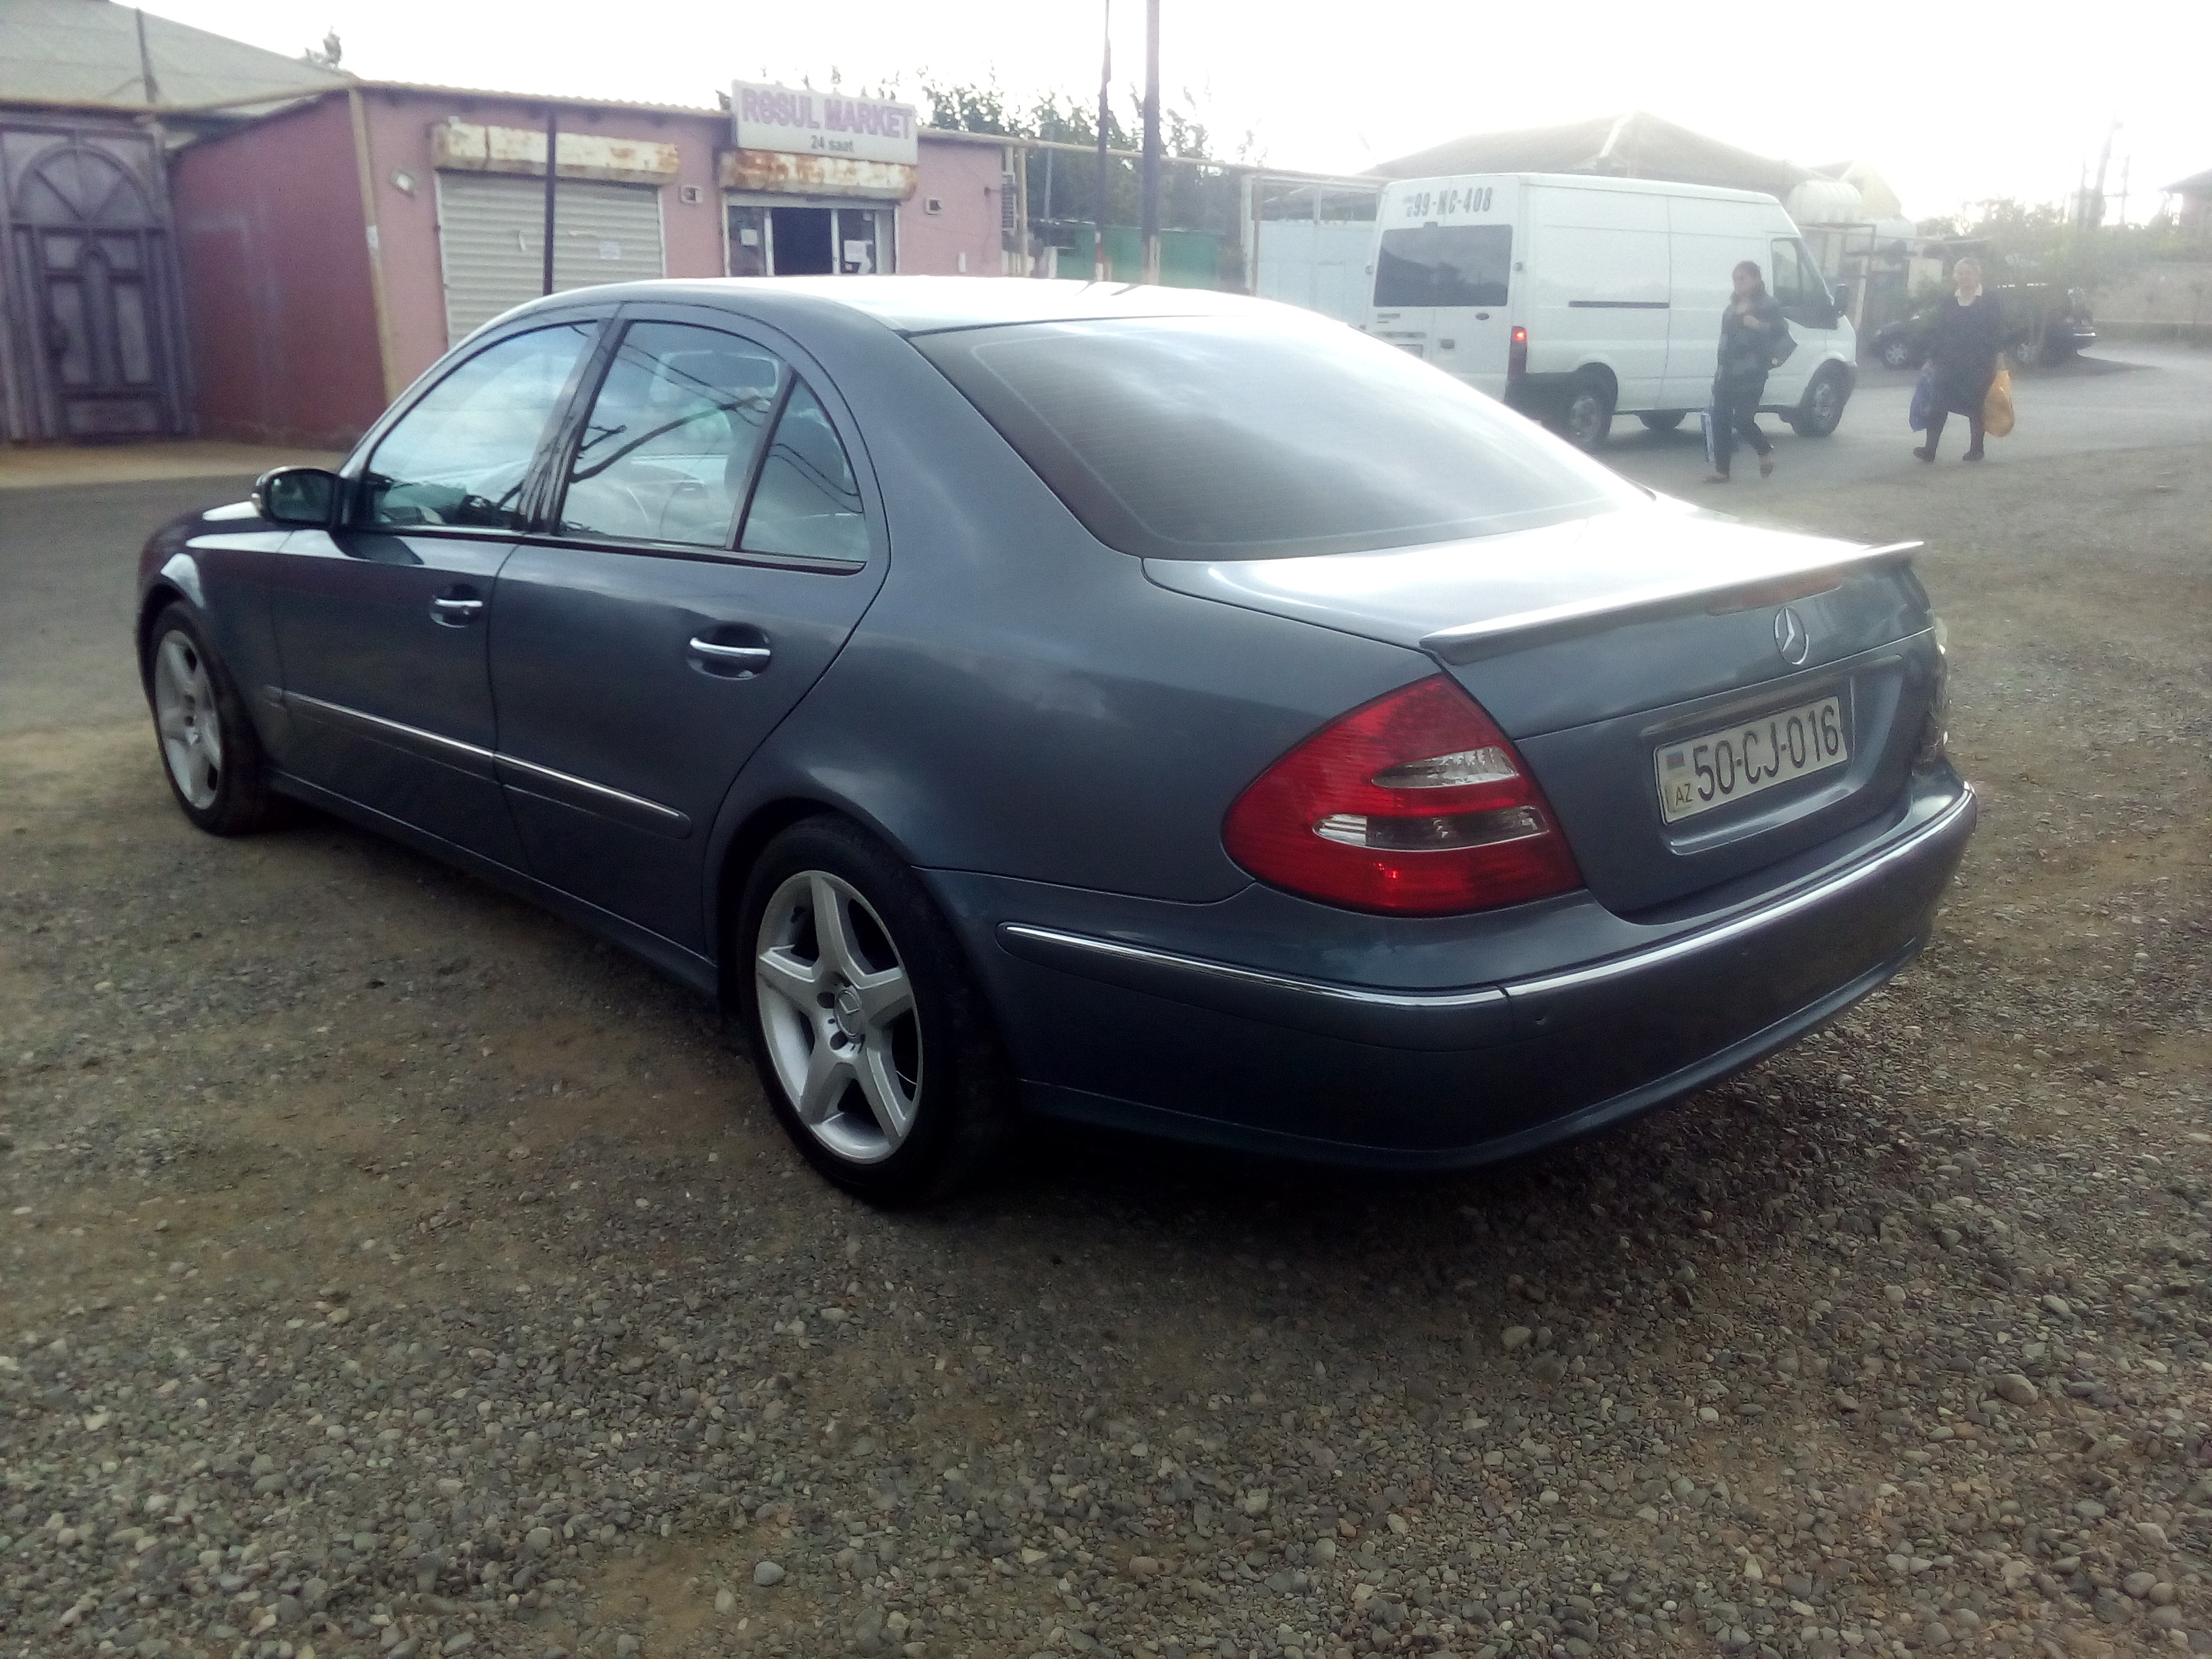 Mercedes-Benz E 240 2.6(lt) 2002 Second hand  $13400